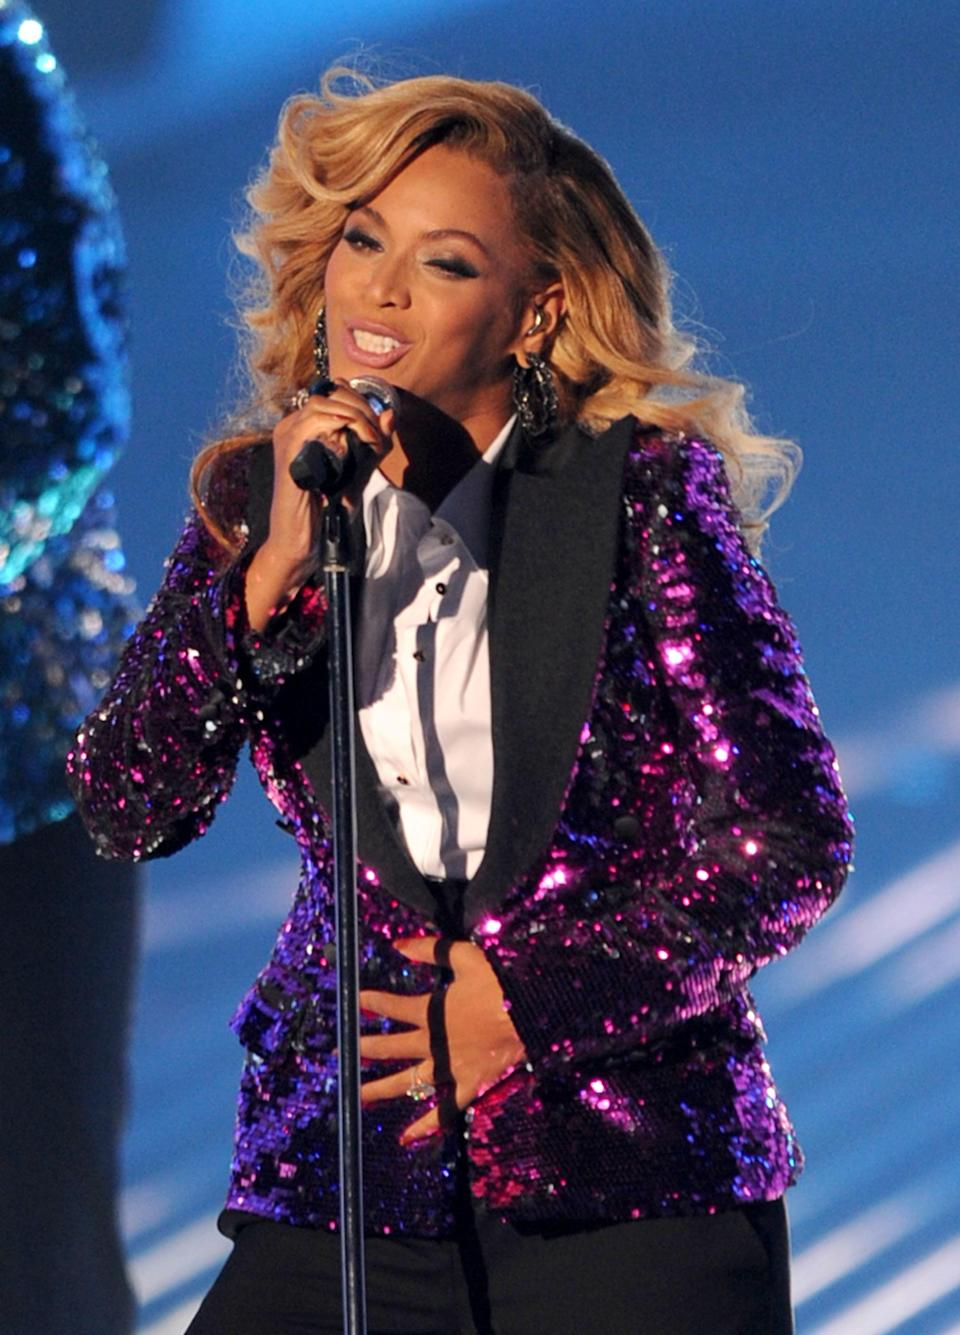 Singer Beyonce Knowles performs onstage during the 2011 MTV Video Music Awards at Nokia Theatre L.A. LIVE on August 28, 2011 in Los Angeles, California